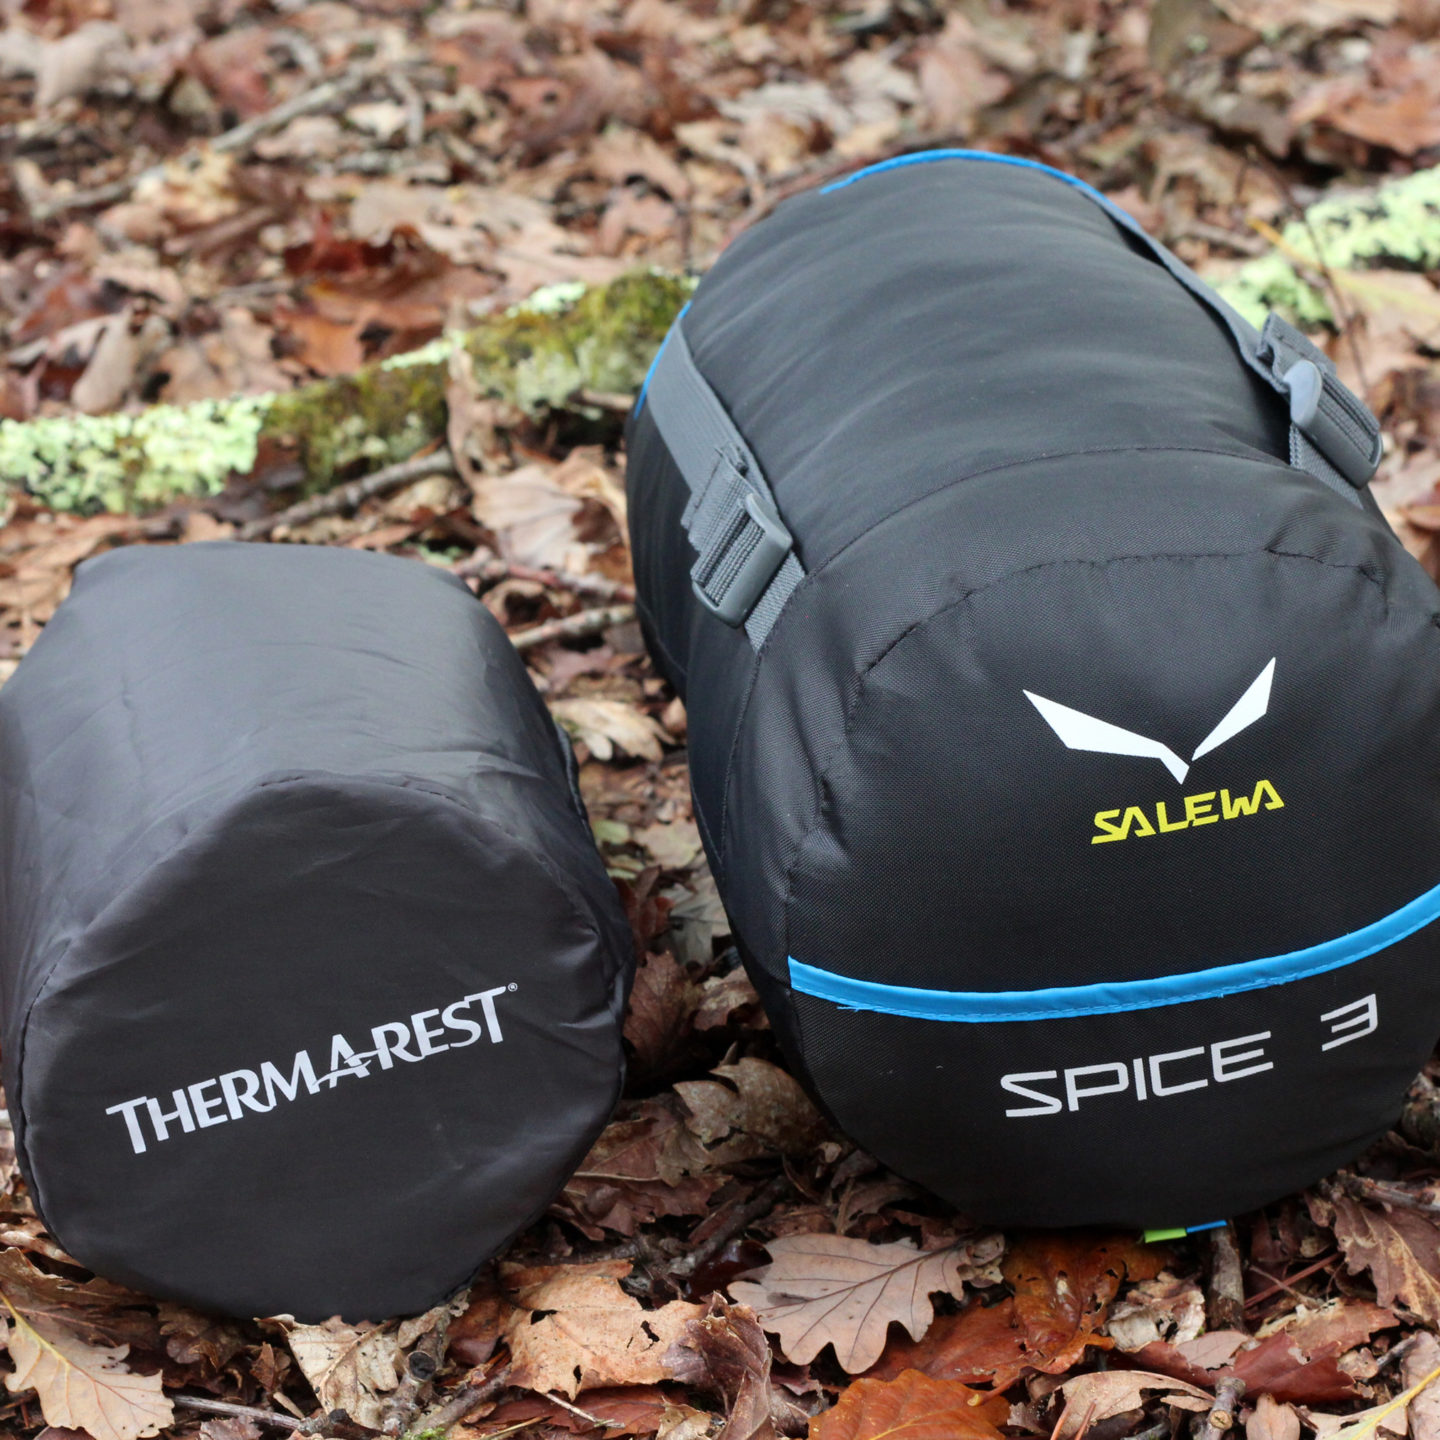 Thermarest NeoAir Venture Sleeping Mat and Salewa Spice Davos Sleeping Bag Review